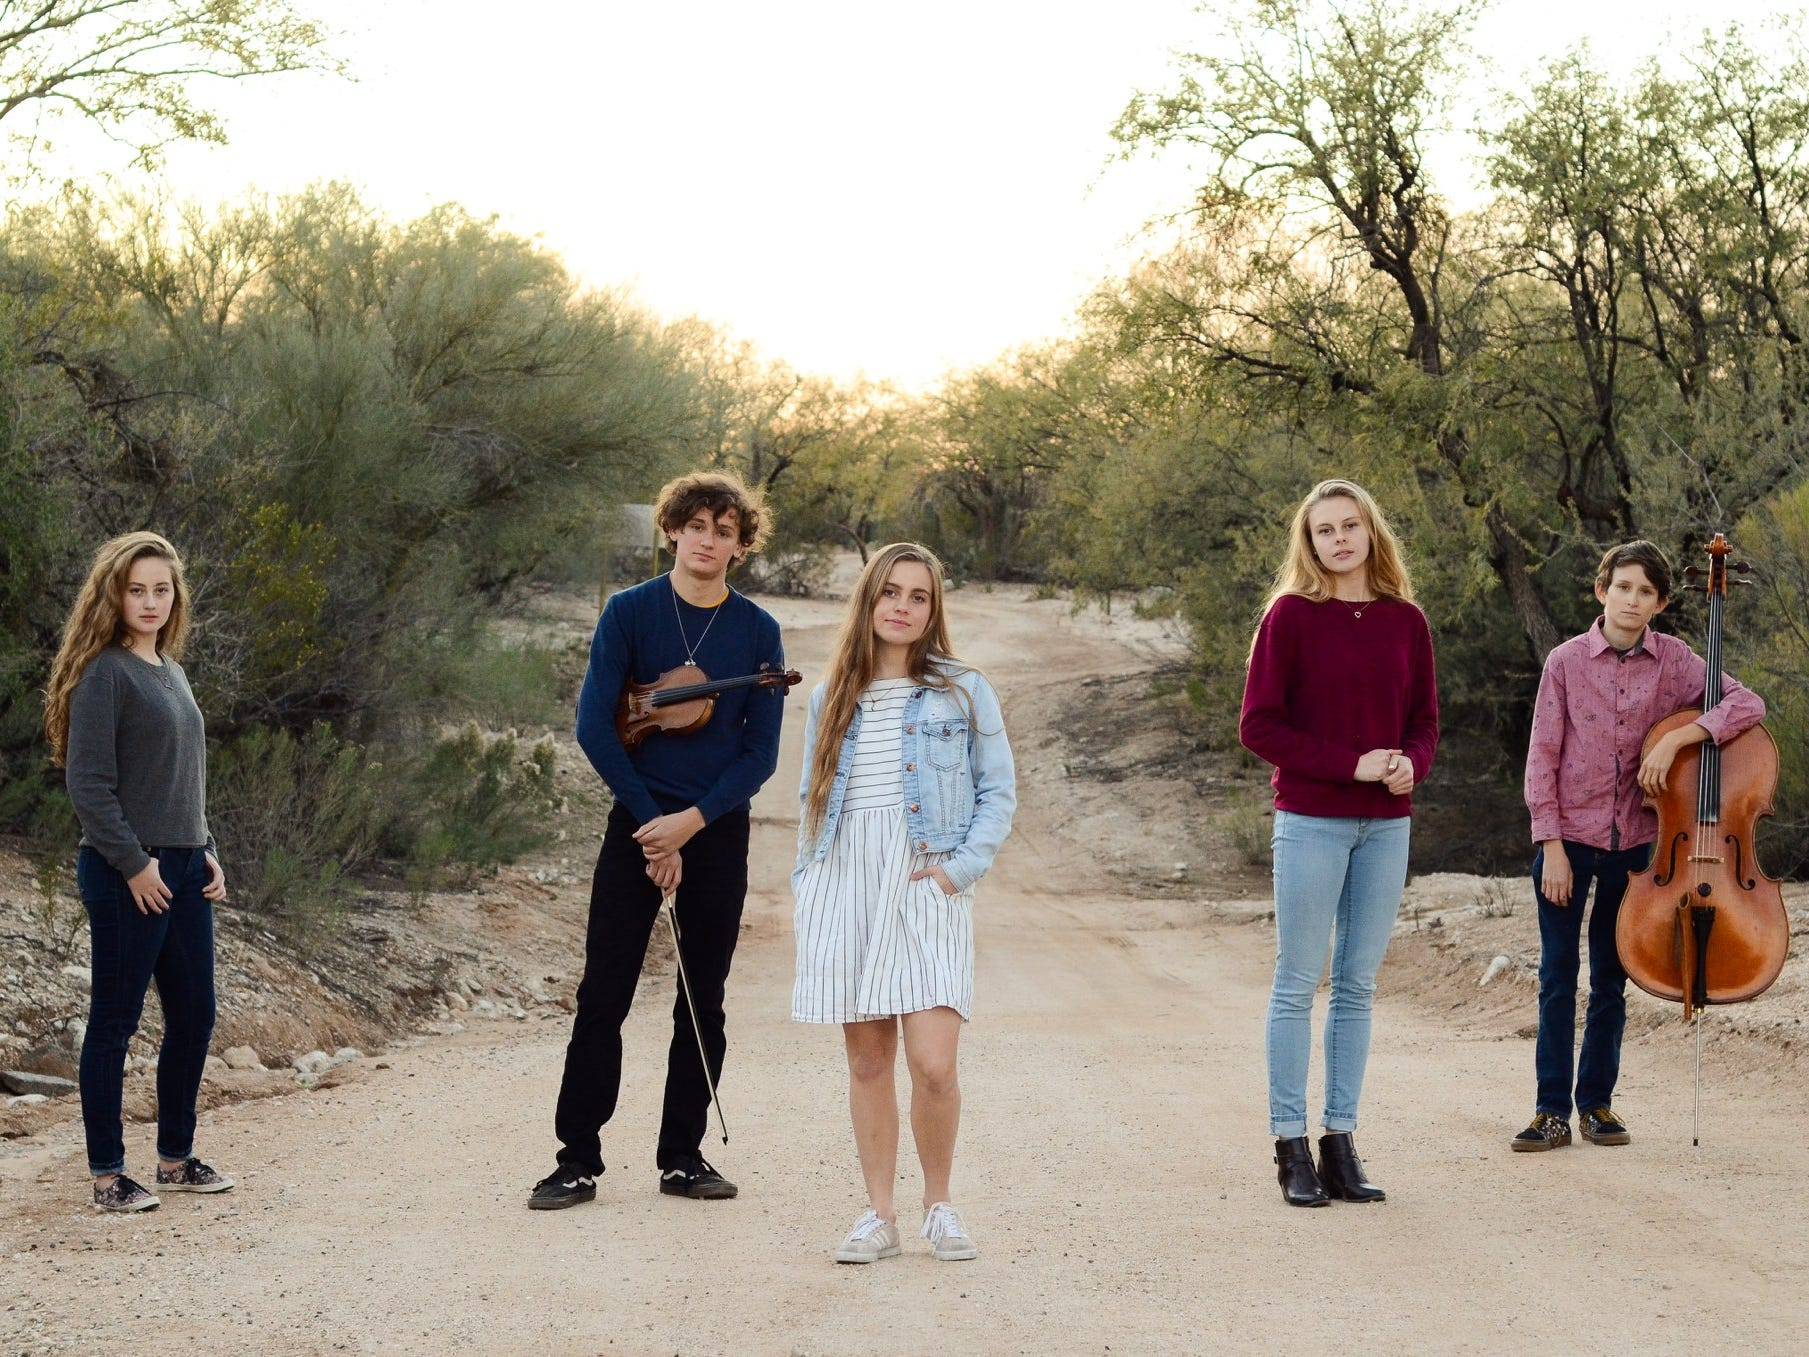 Copper Wren (left to right): Alivea Addleman, 14; Will MacDonald, 17; Ava Addleman, 18; Angel Addleman, 17; Lee MacDonald, 14.